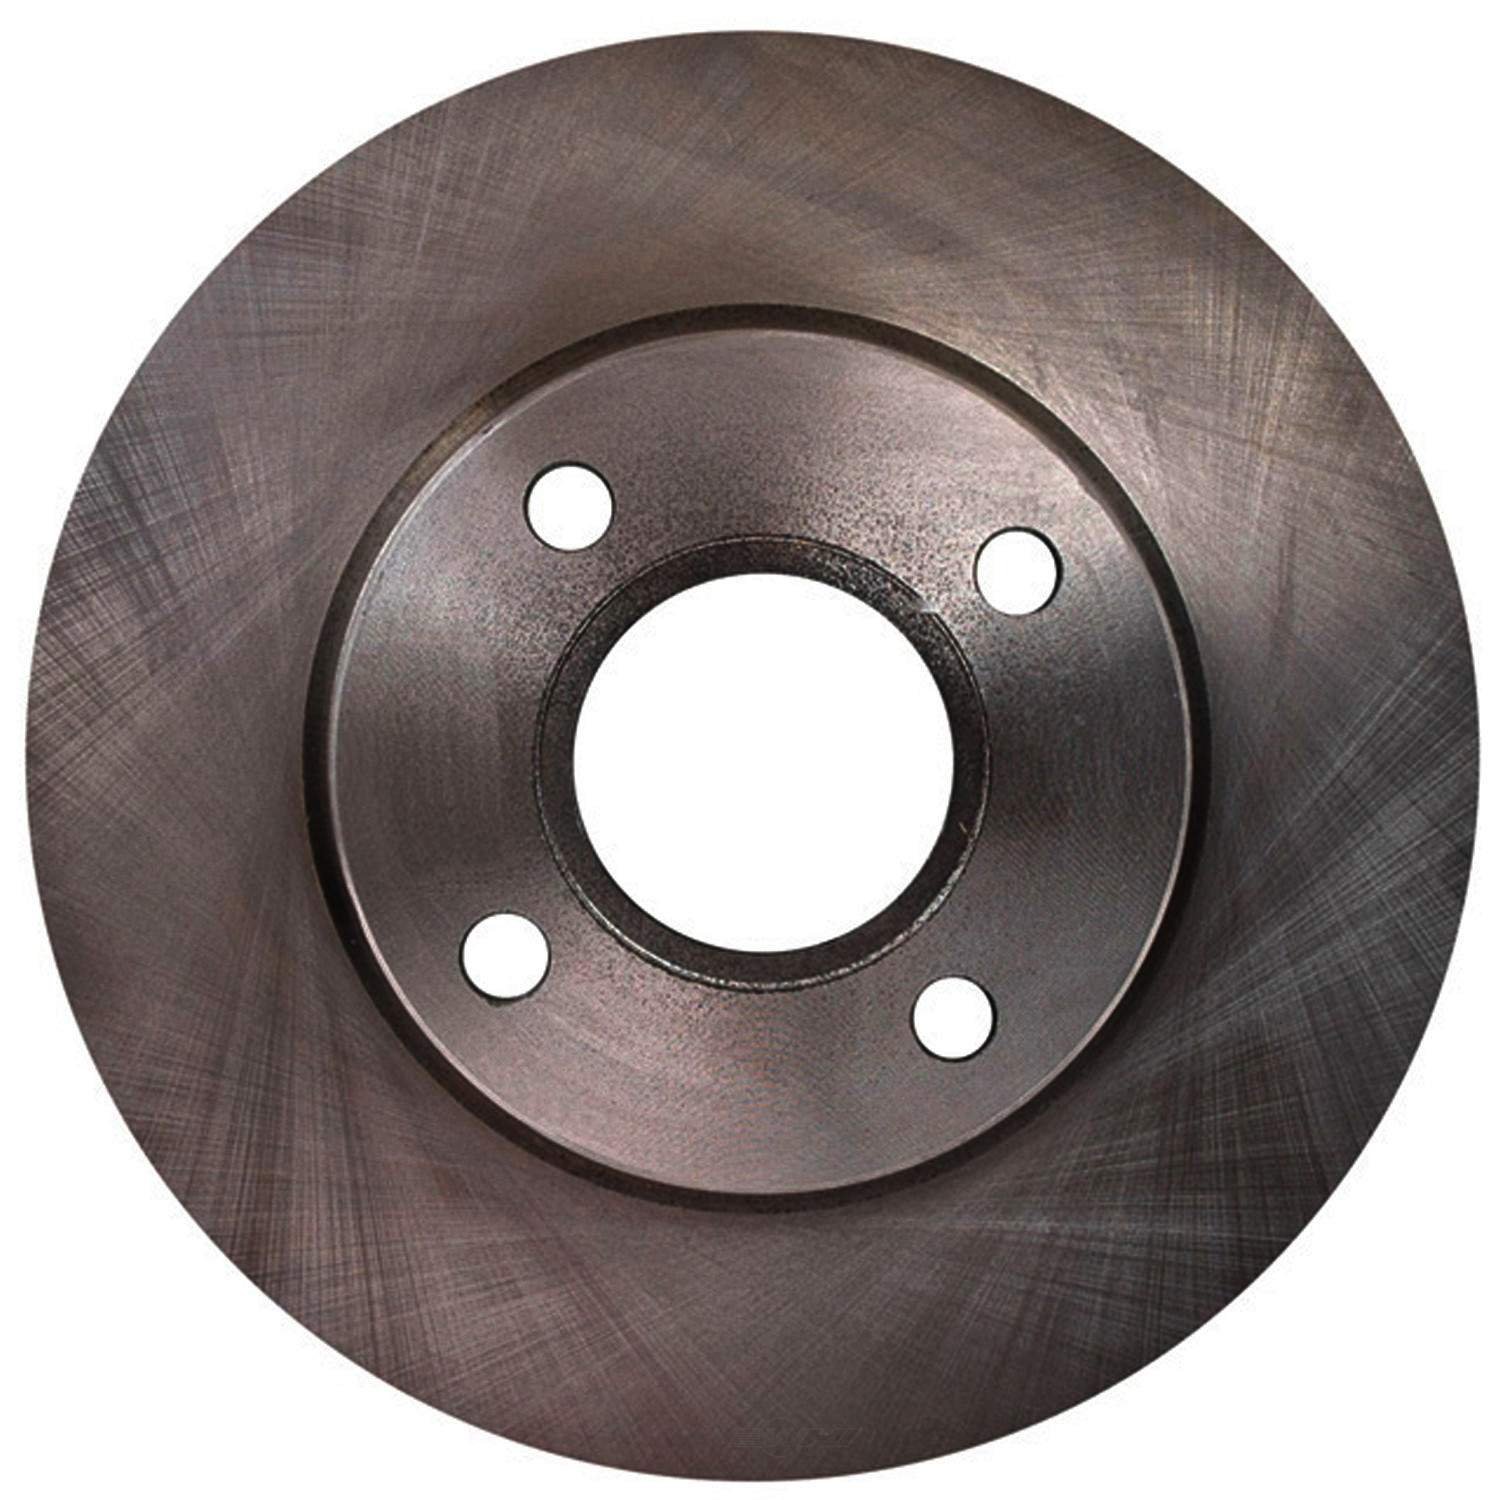 ACDELCO ADVANTAGE - Non-Coated Disc Brake Rotor - DCD 18A967A